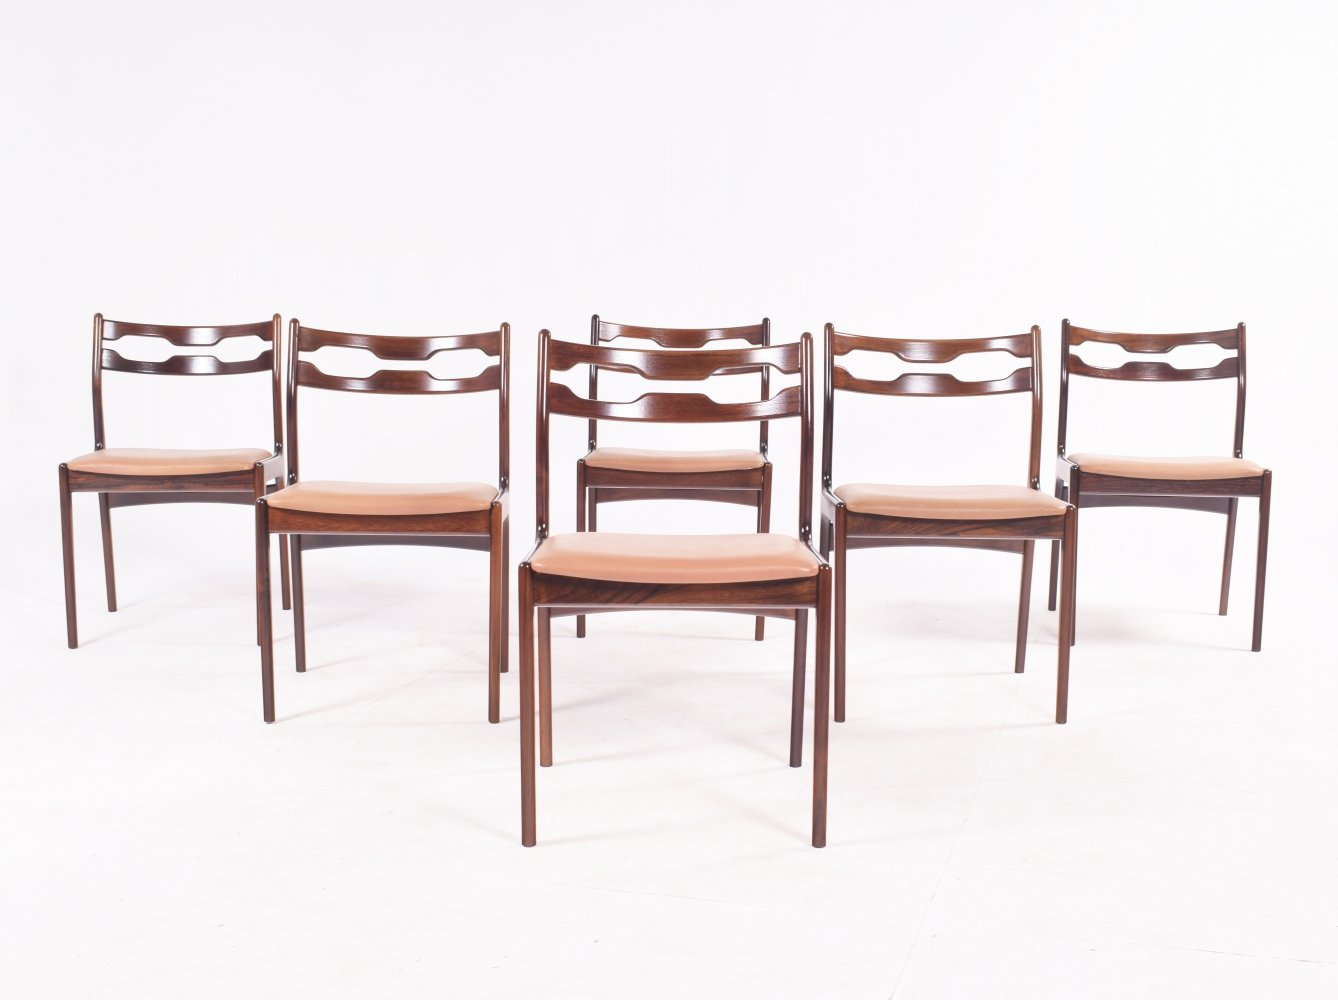 Set of Six Rare Rosewood Razorblade Dining Chairs by Erling Torvits, Denmark 1960s